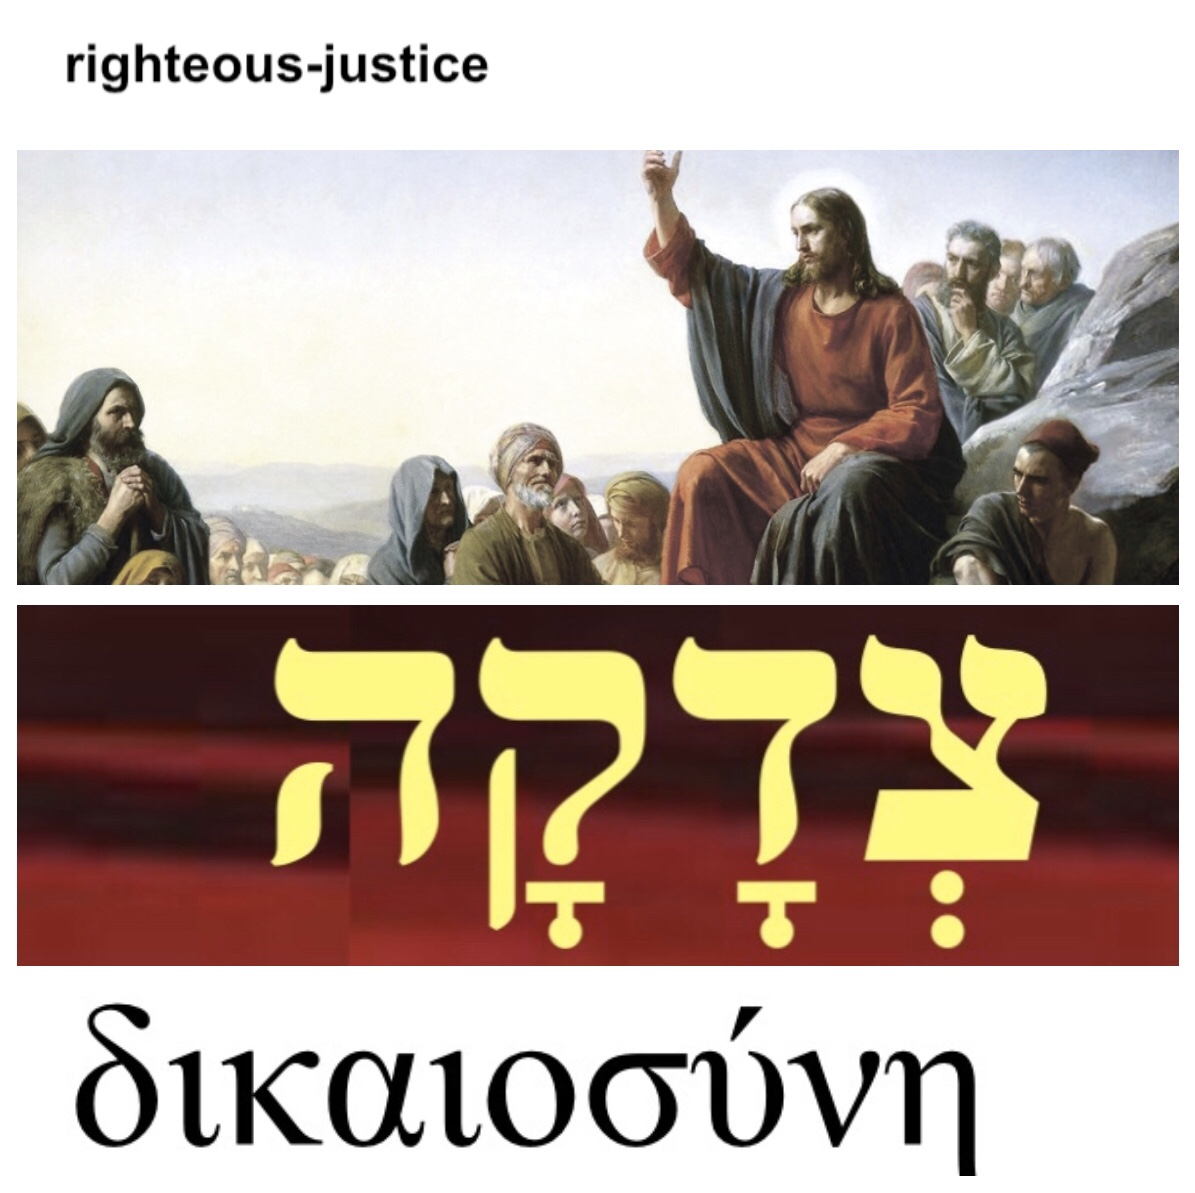 An excess of righteous-justice (Matt 5)